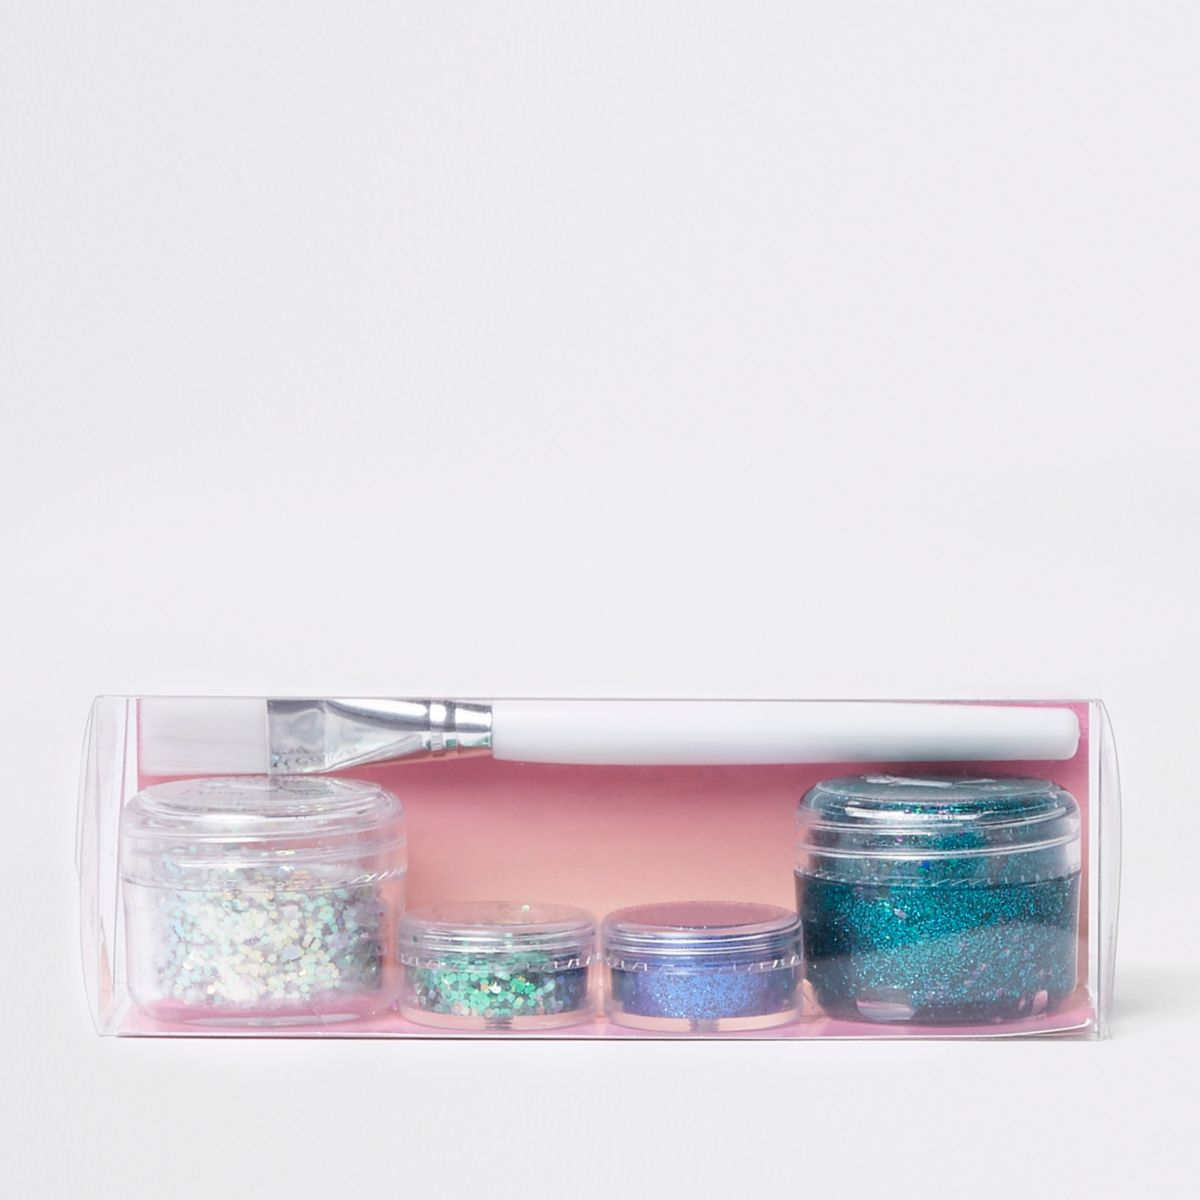 Prima blue glitter stack makeup set